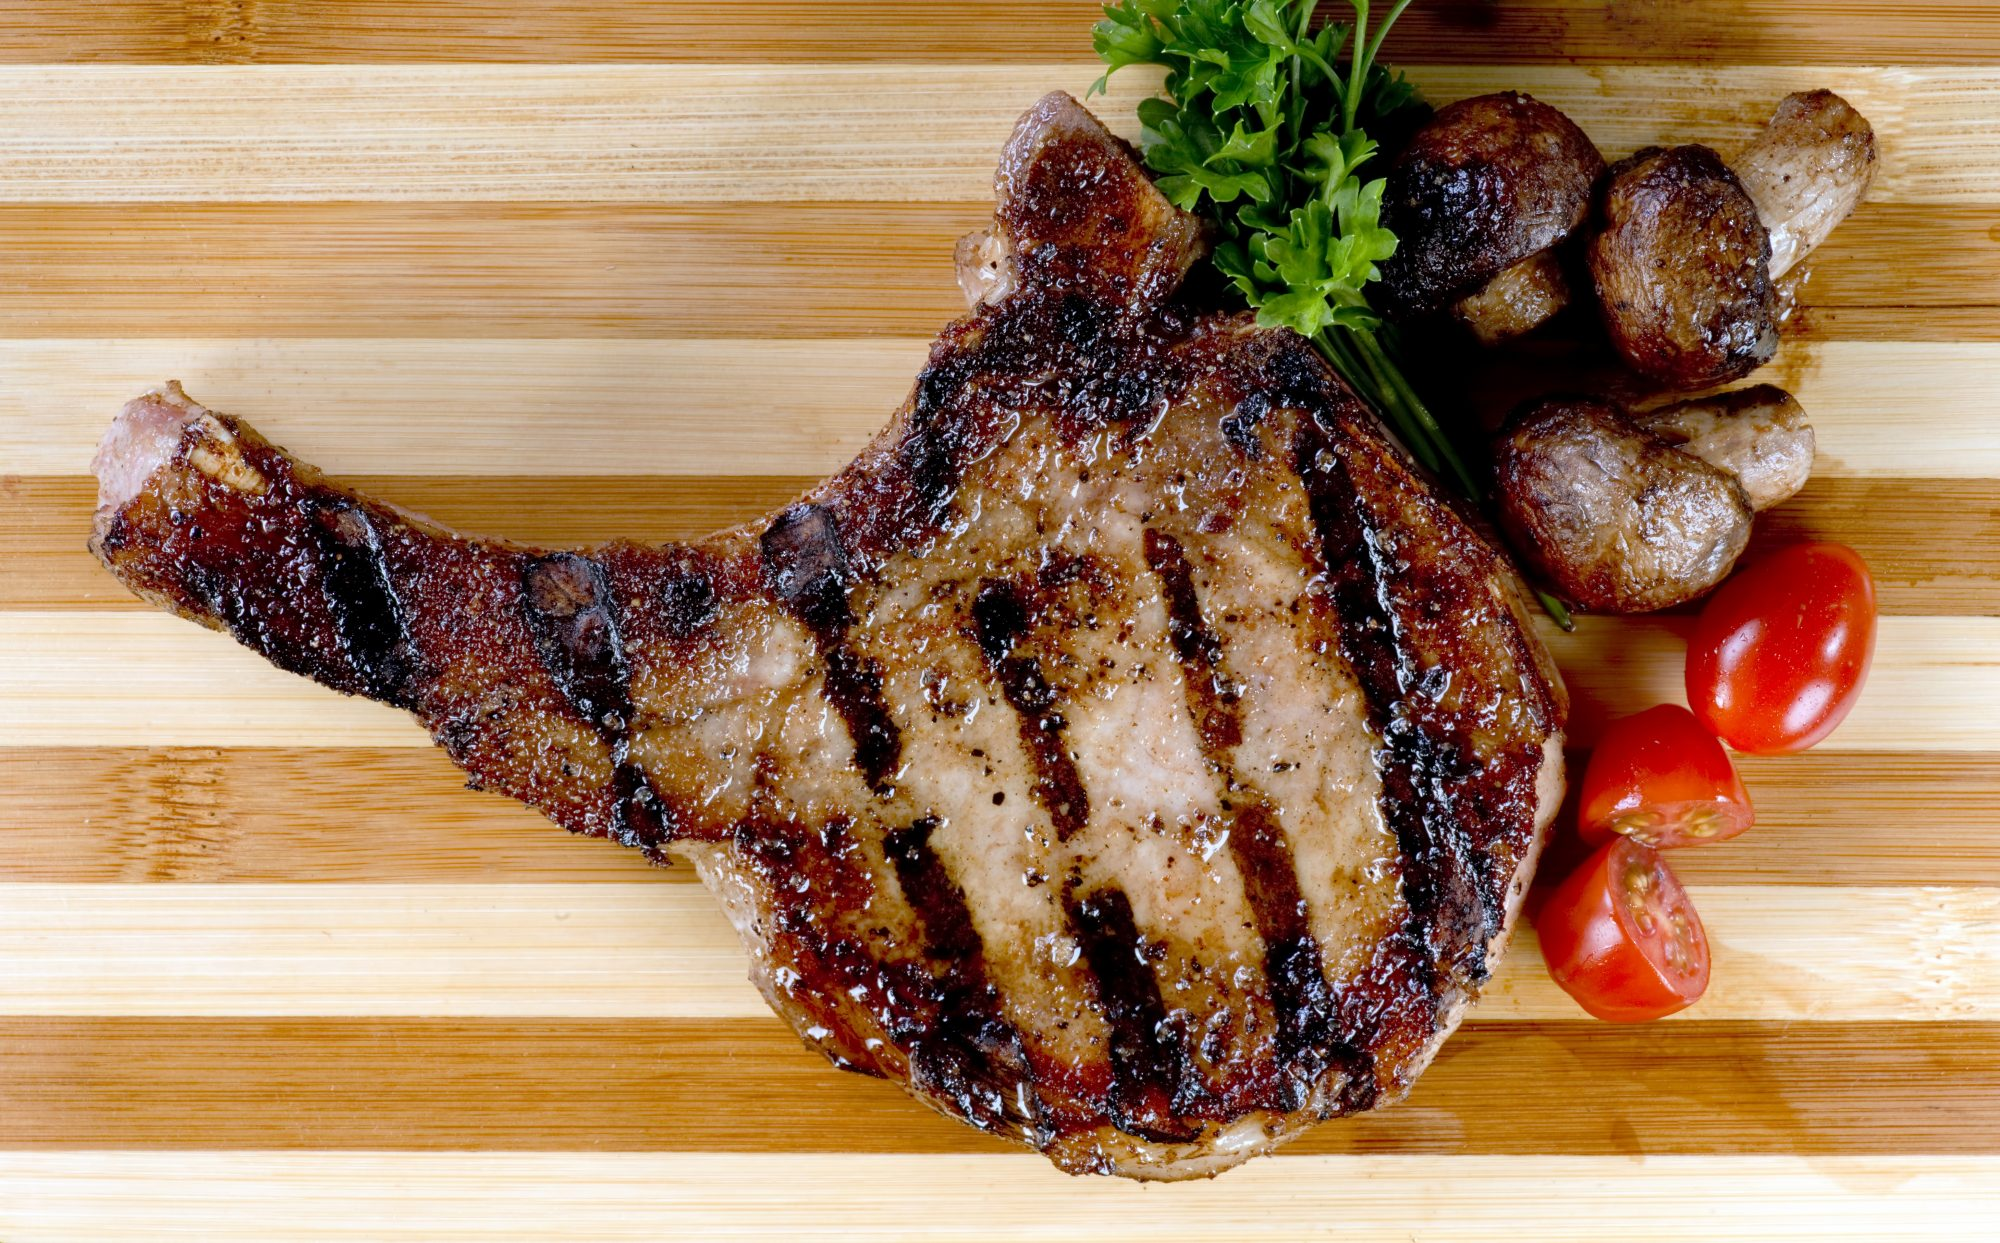 The Secret to Juicy Grilled Pork Chops Every Time